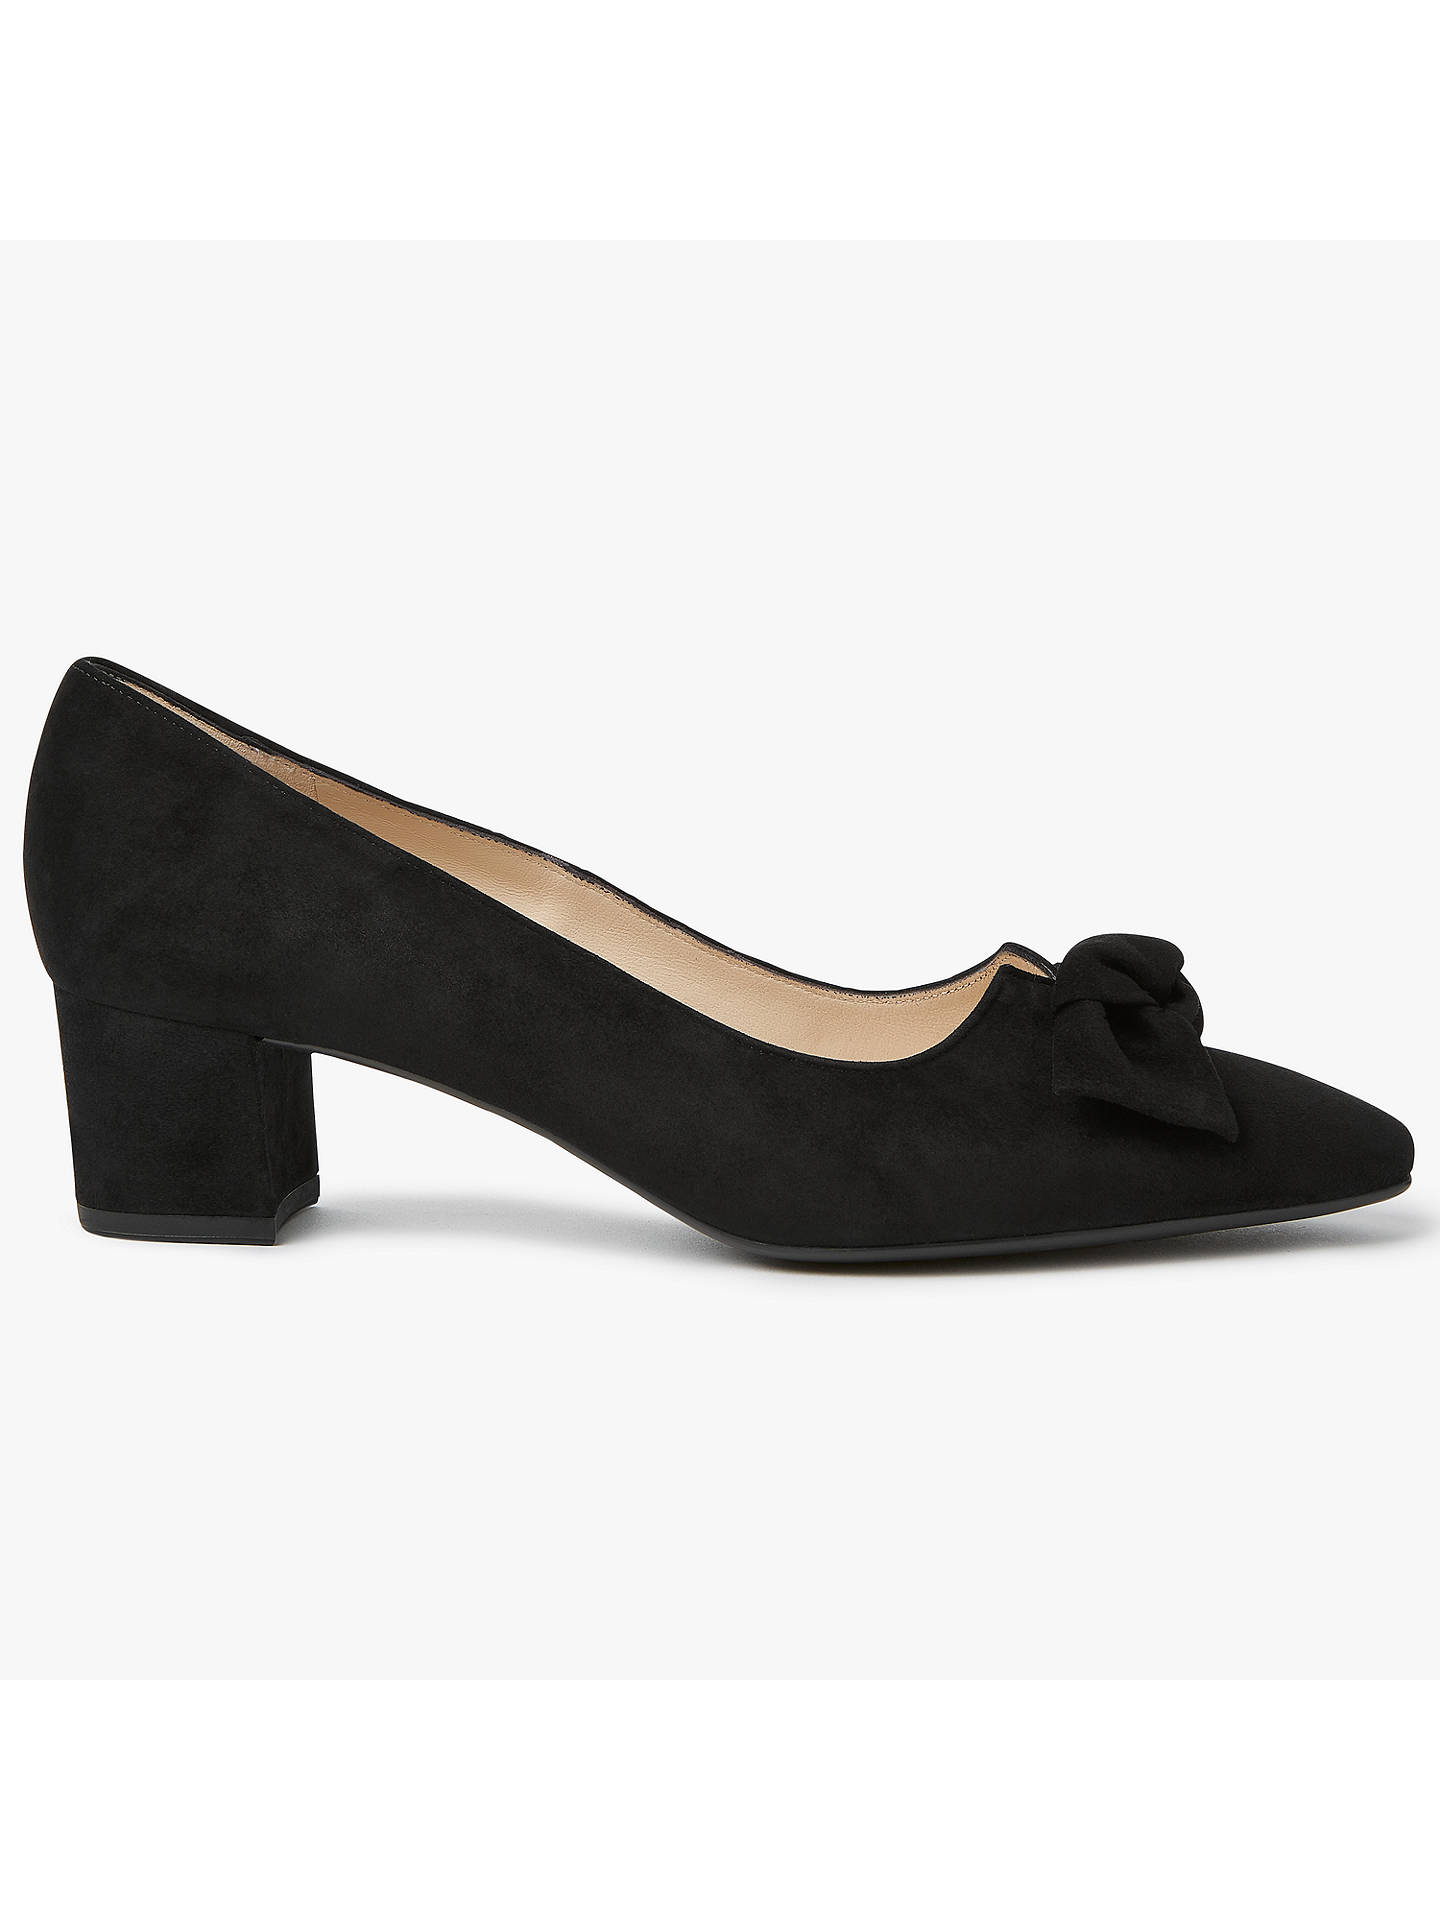 0a18a44ef12 Peter Kaiser Binella Mid Block Heel Bow Court Shoes at John Lewis ...